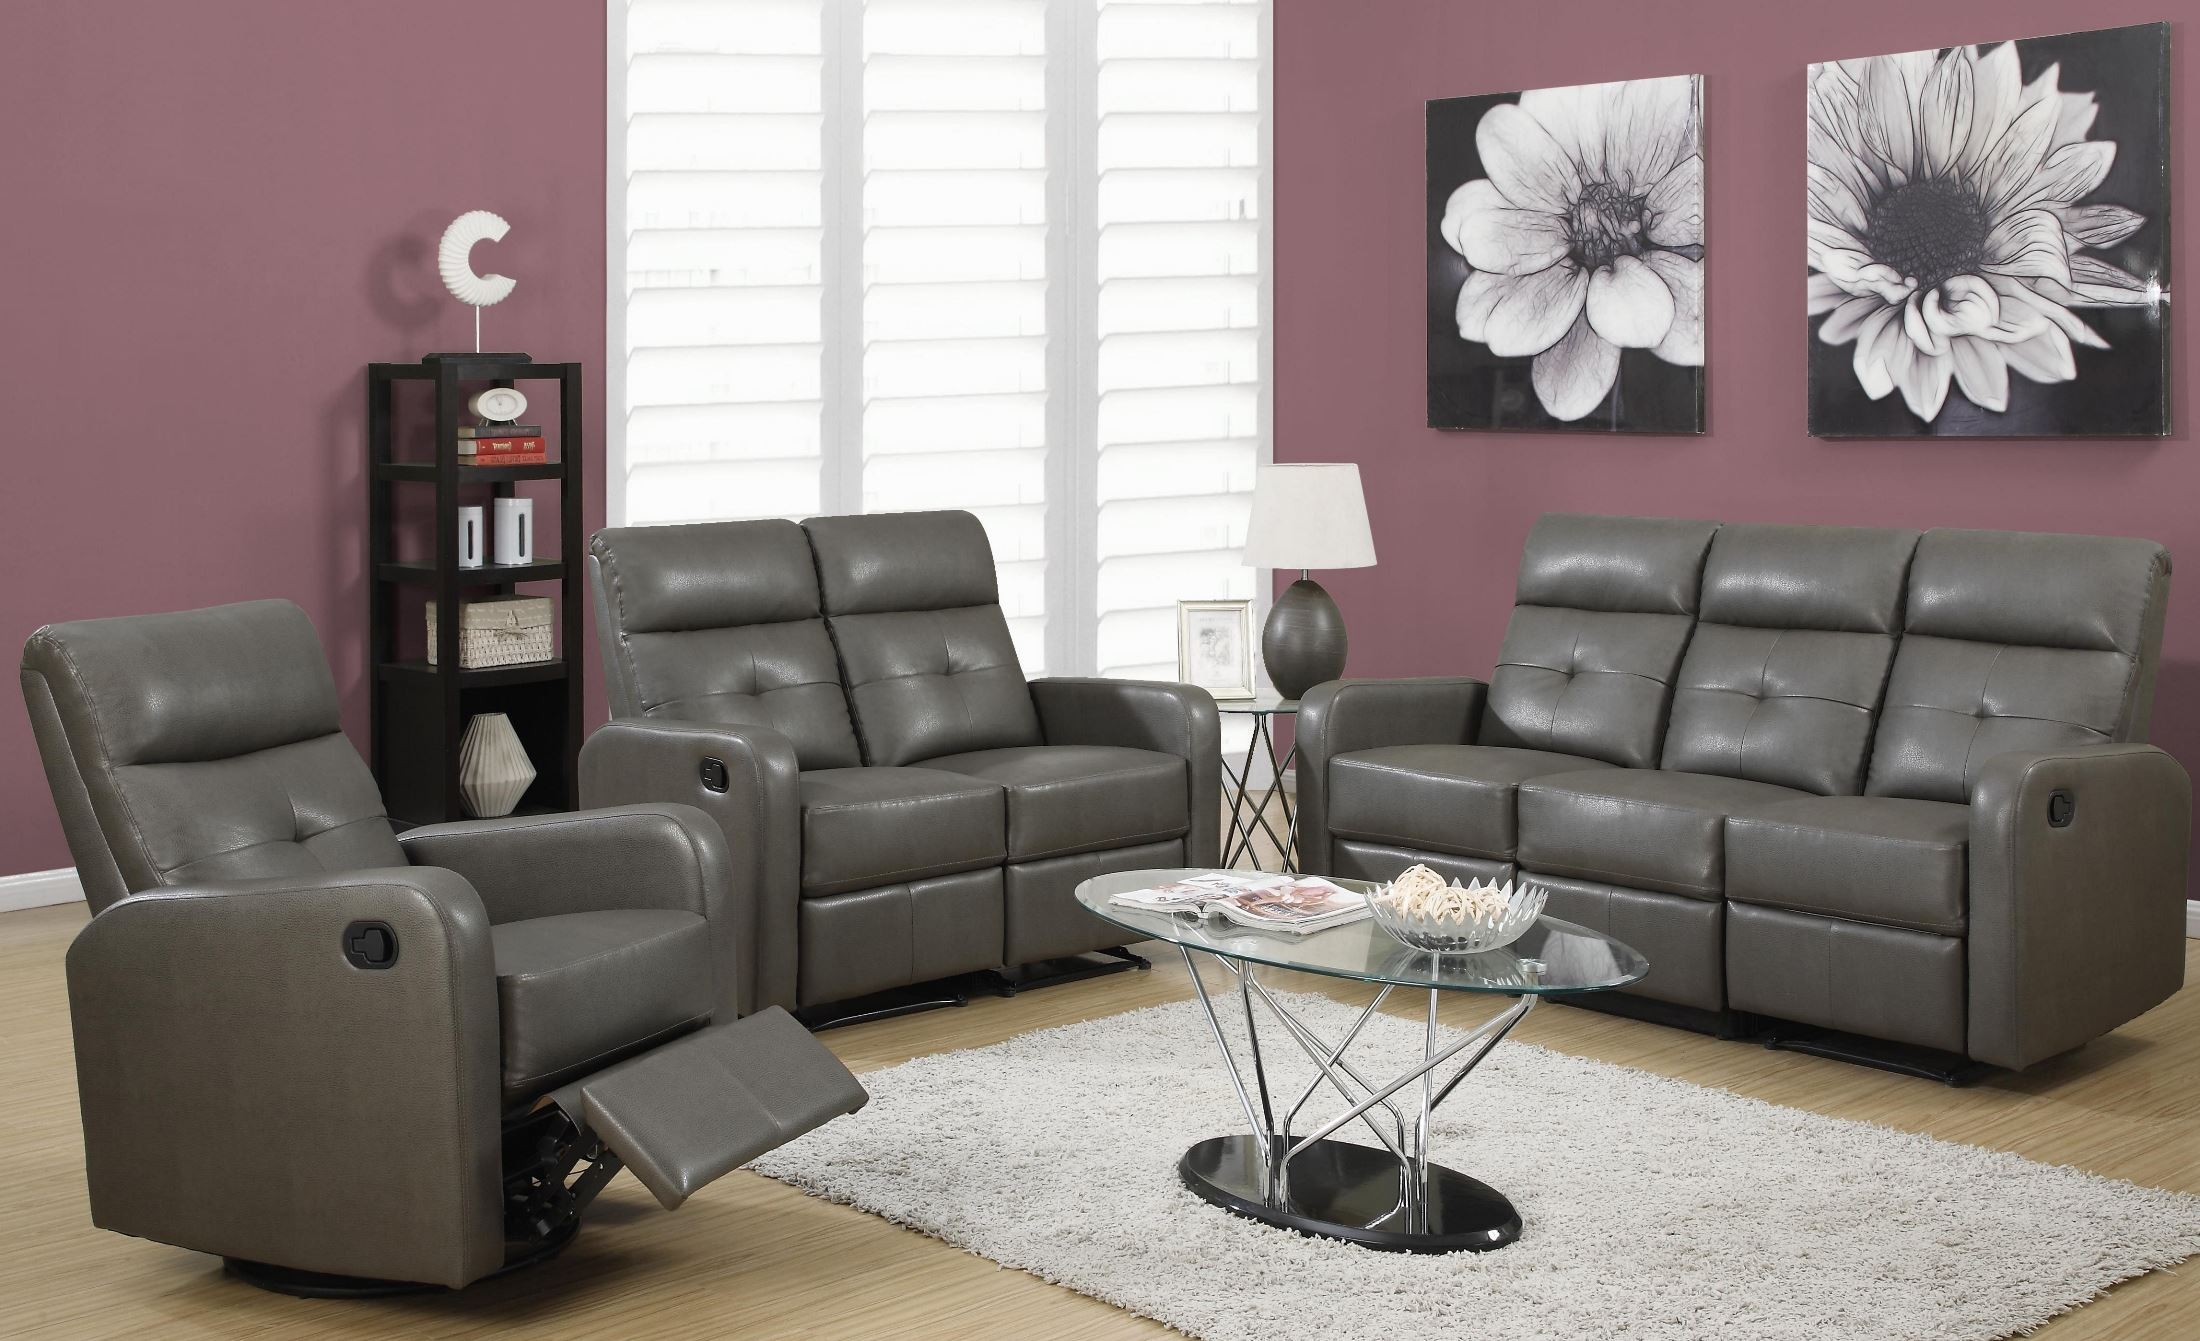 white reclining sofa and loveseat 1 sofala ave riverview 2066 85gy-3 charcoal gray bonded leather living room ...